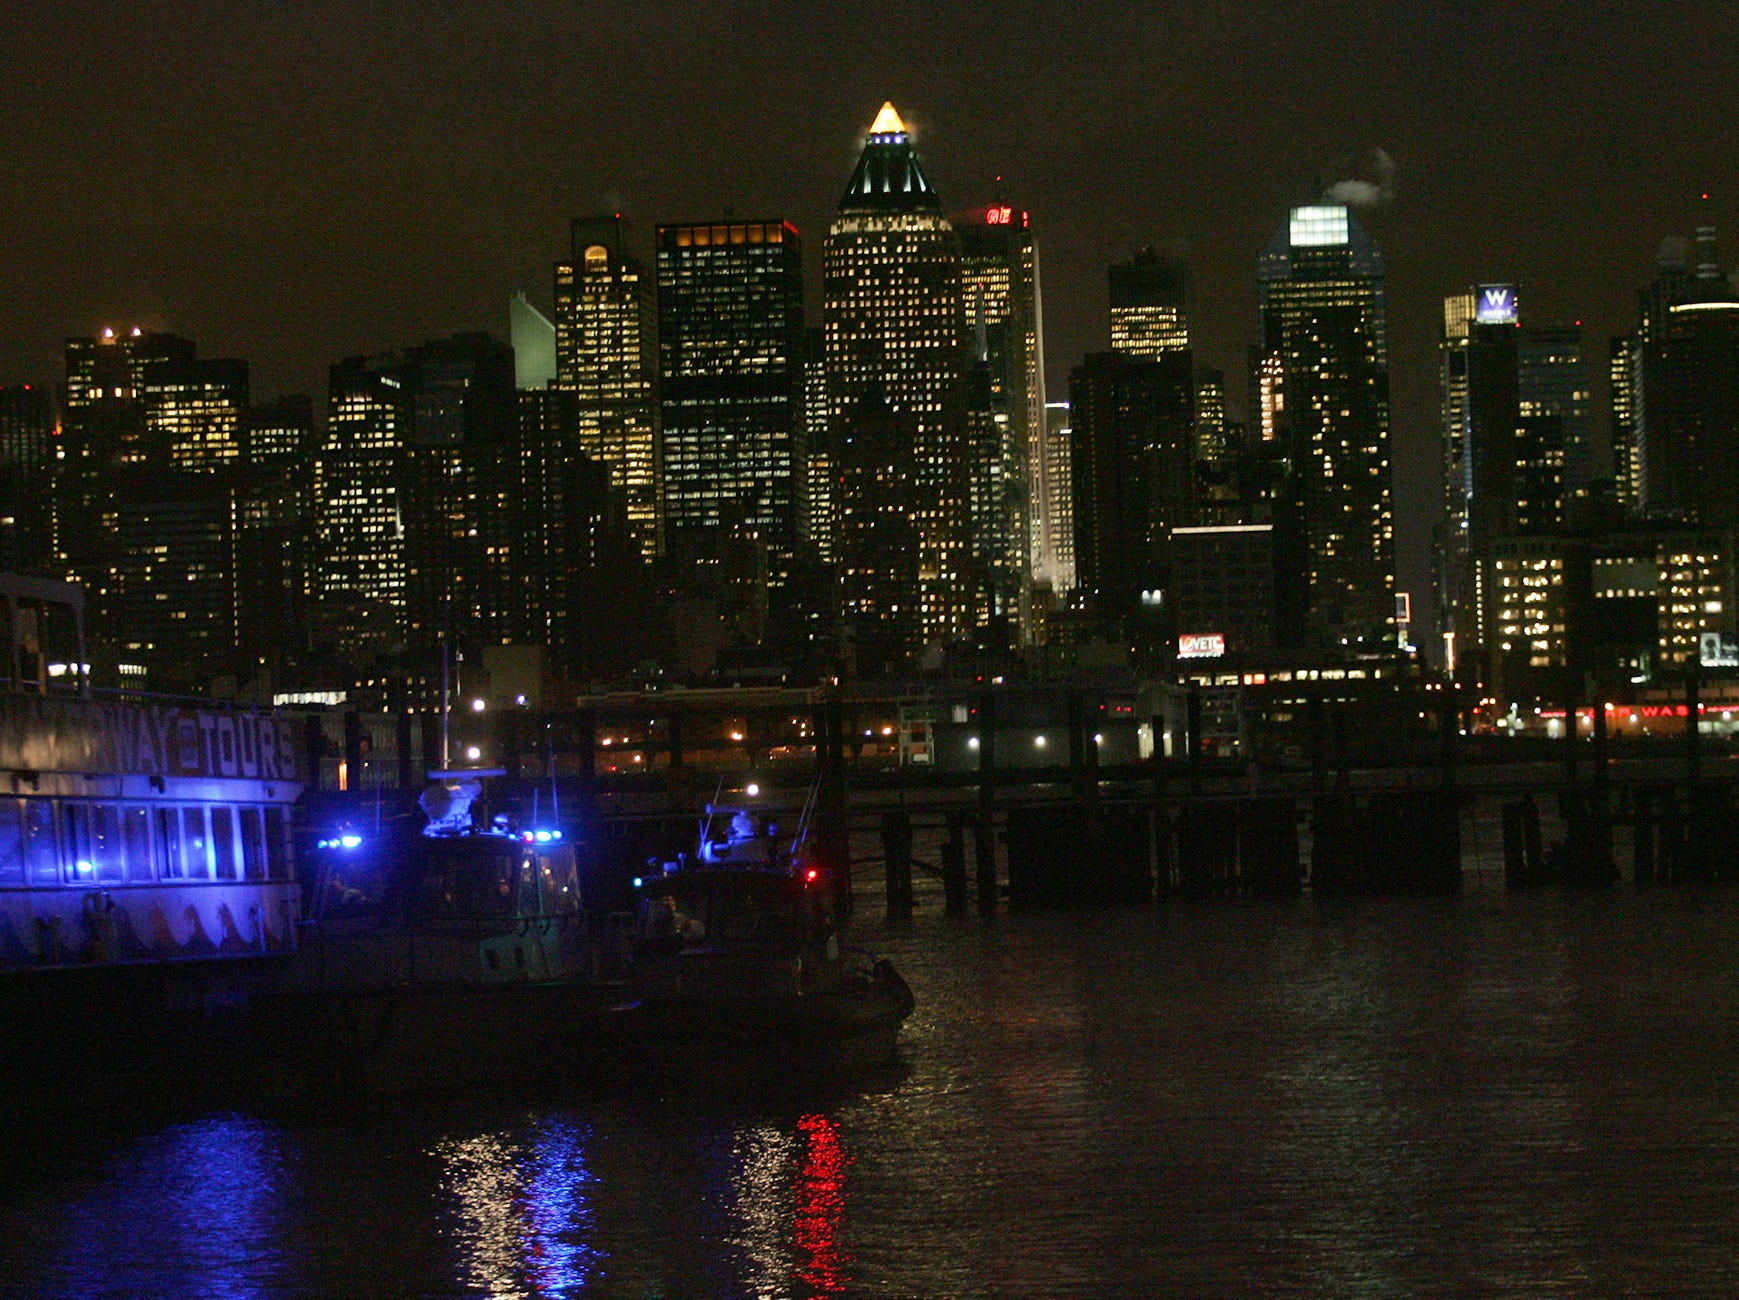 Boats flashing red and blue lights are shown docked at Port Imperial in Weehawken, across from midtown.